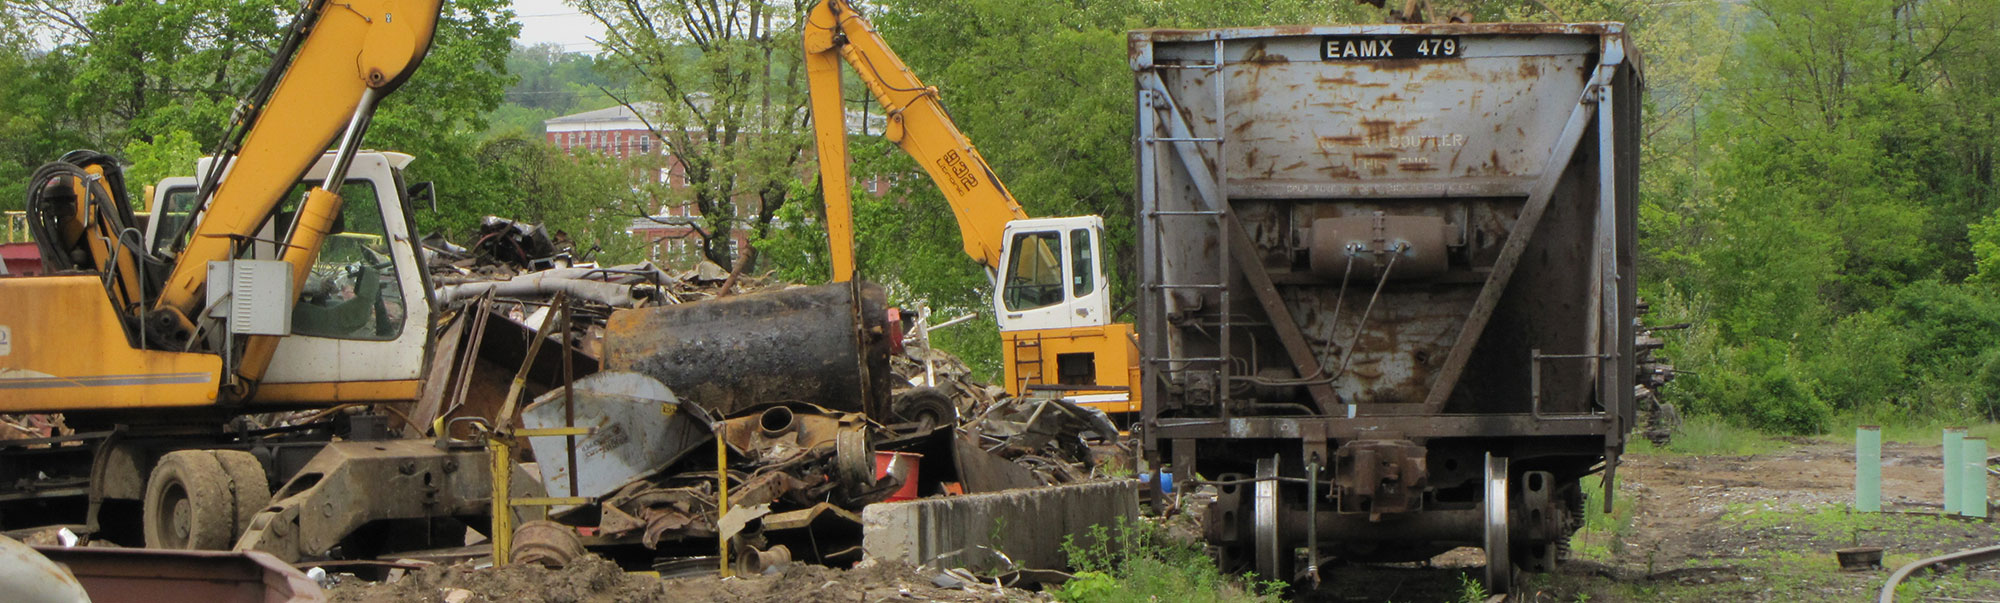 Scrap Metal Prices Elkins Wv Elkins Metal Recycling